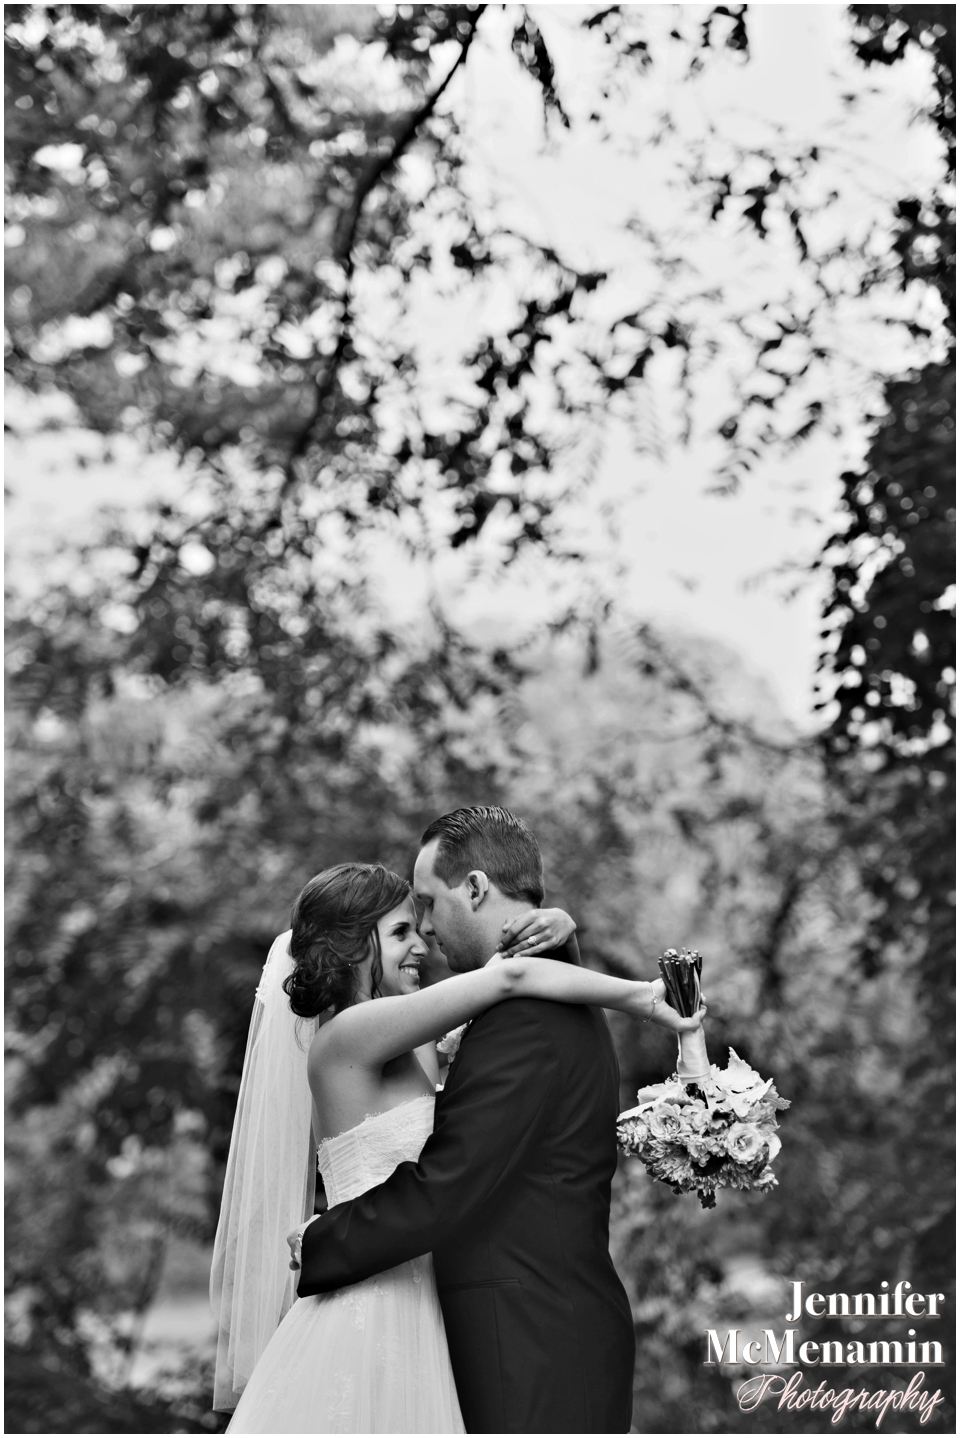 0092-BlumWilliams_03342bw-0664_JenniferMcMenaminPhotography_Evergreen-Museum-Carriage-House_Baltimore-wedding-photography_Baltimore-wedding-photographer